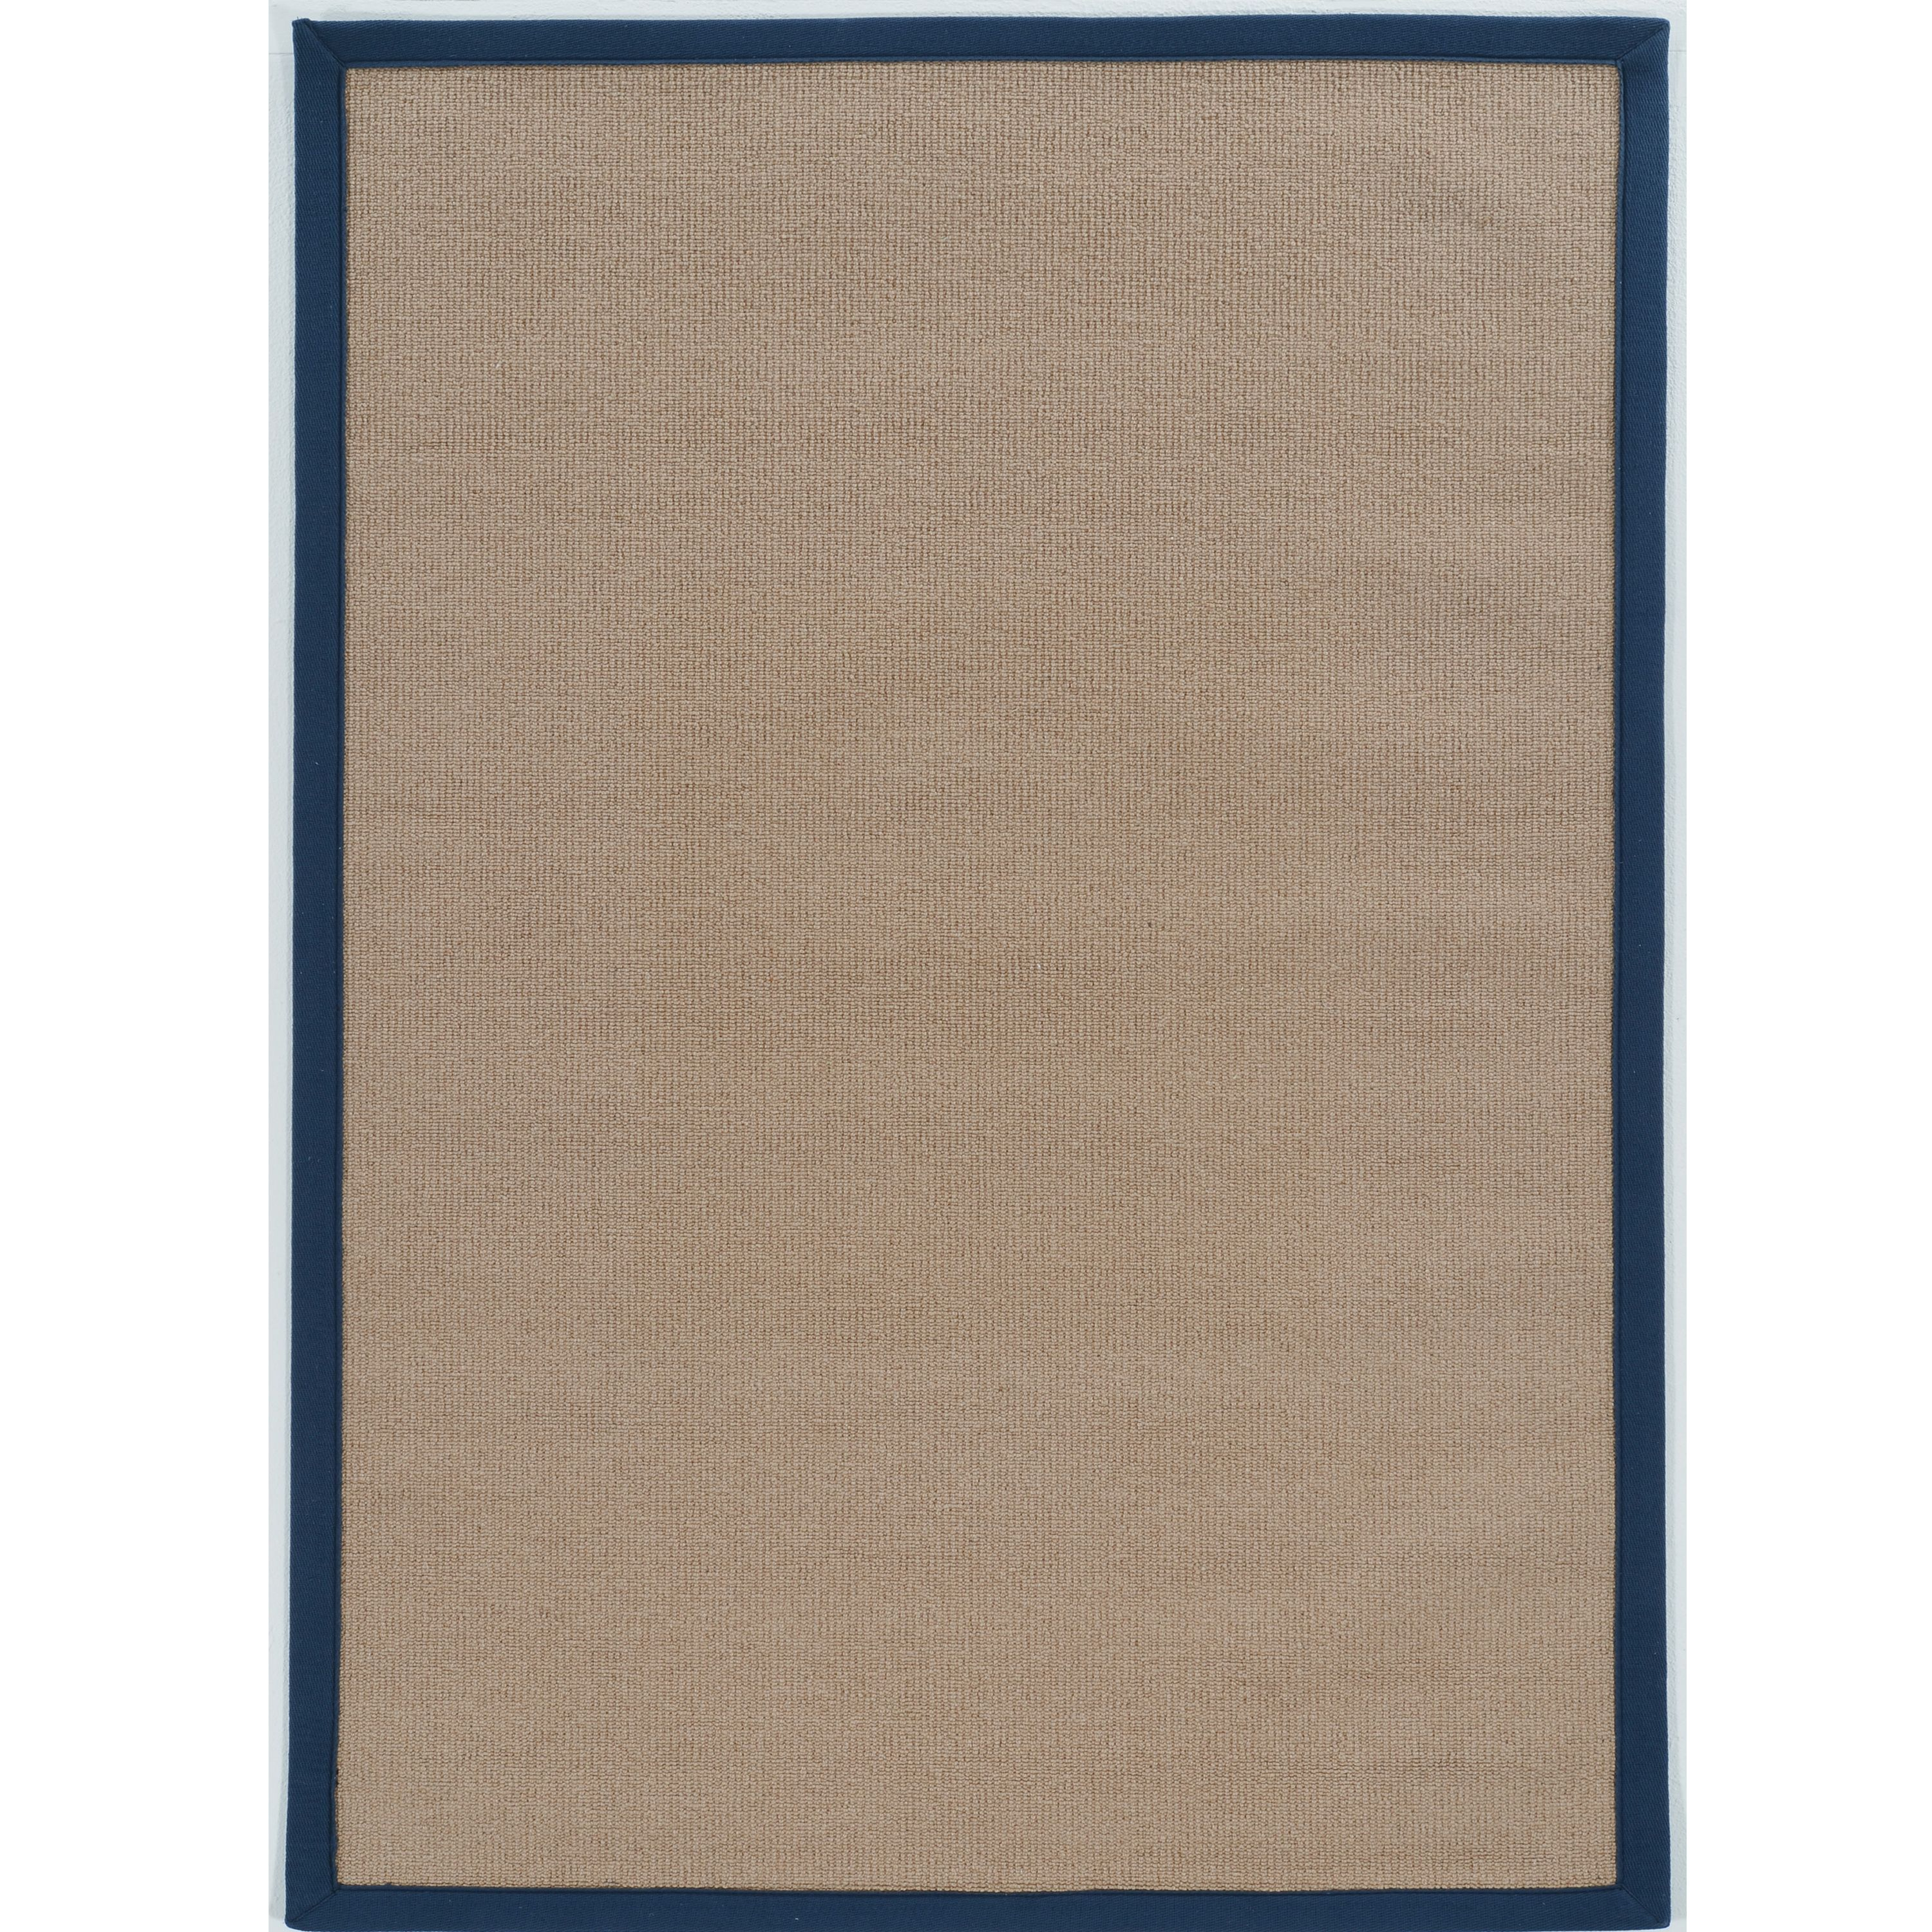 Athena Cork Accent Rug